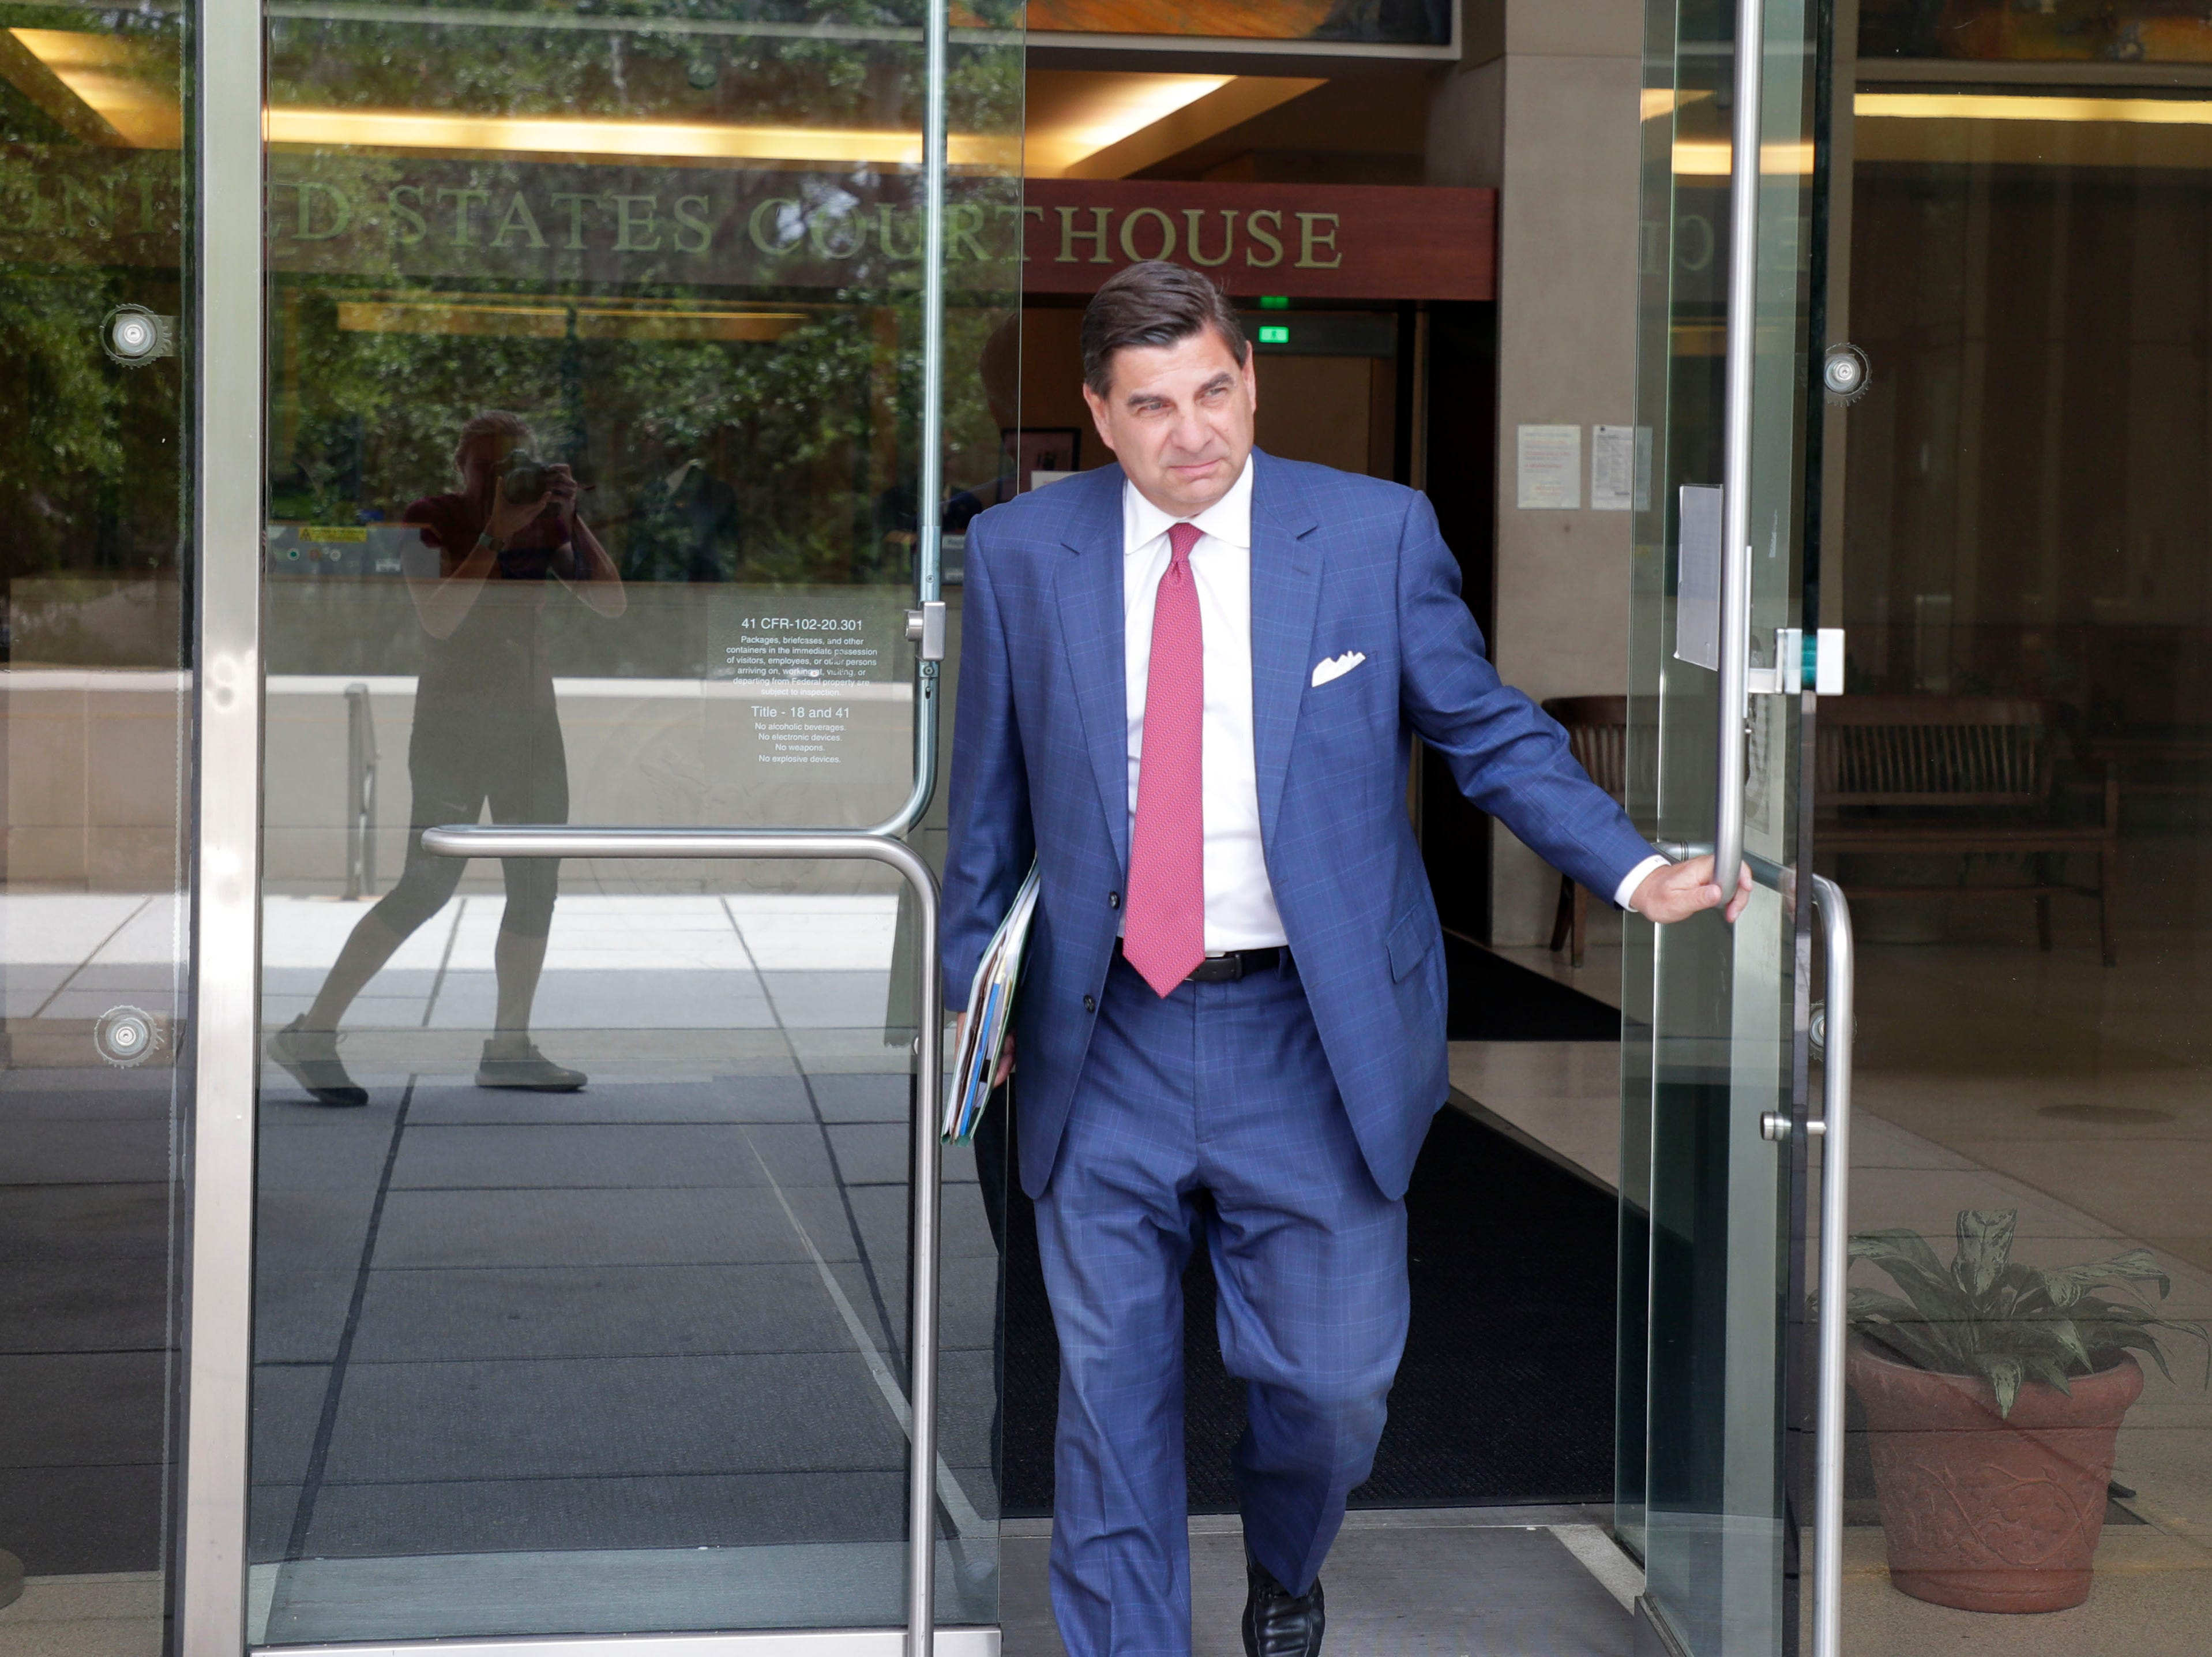 Tallahassee attorney Tim Jansen exits the Federal Courthouse in Tallahassee Thursday, May 9, 2019.